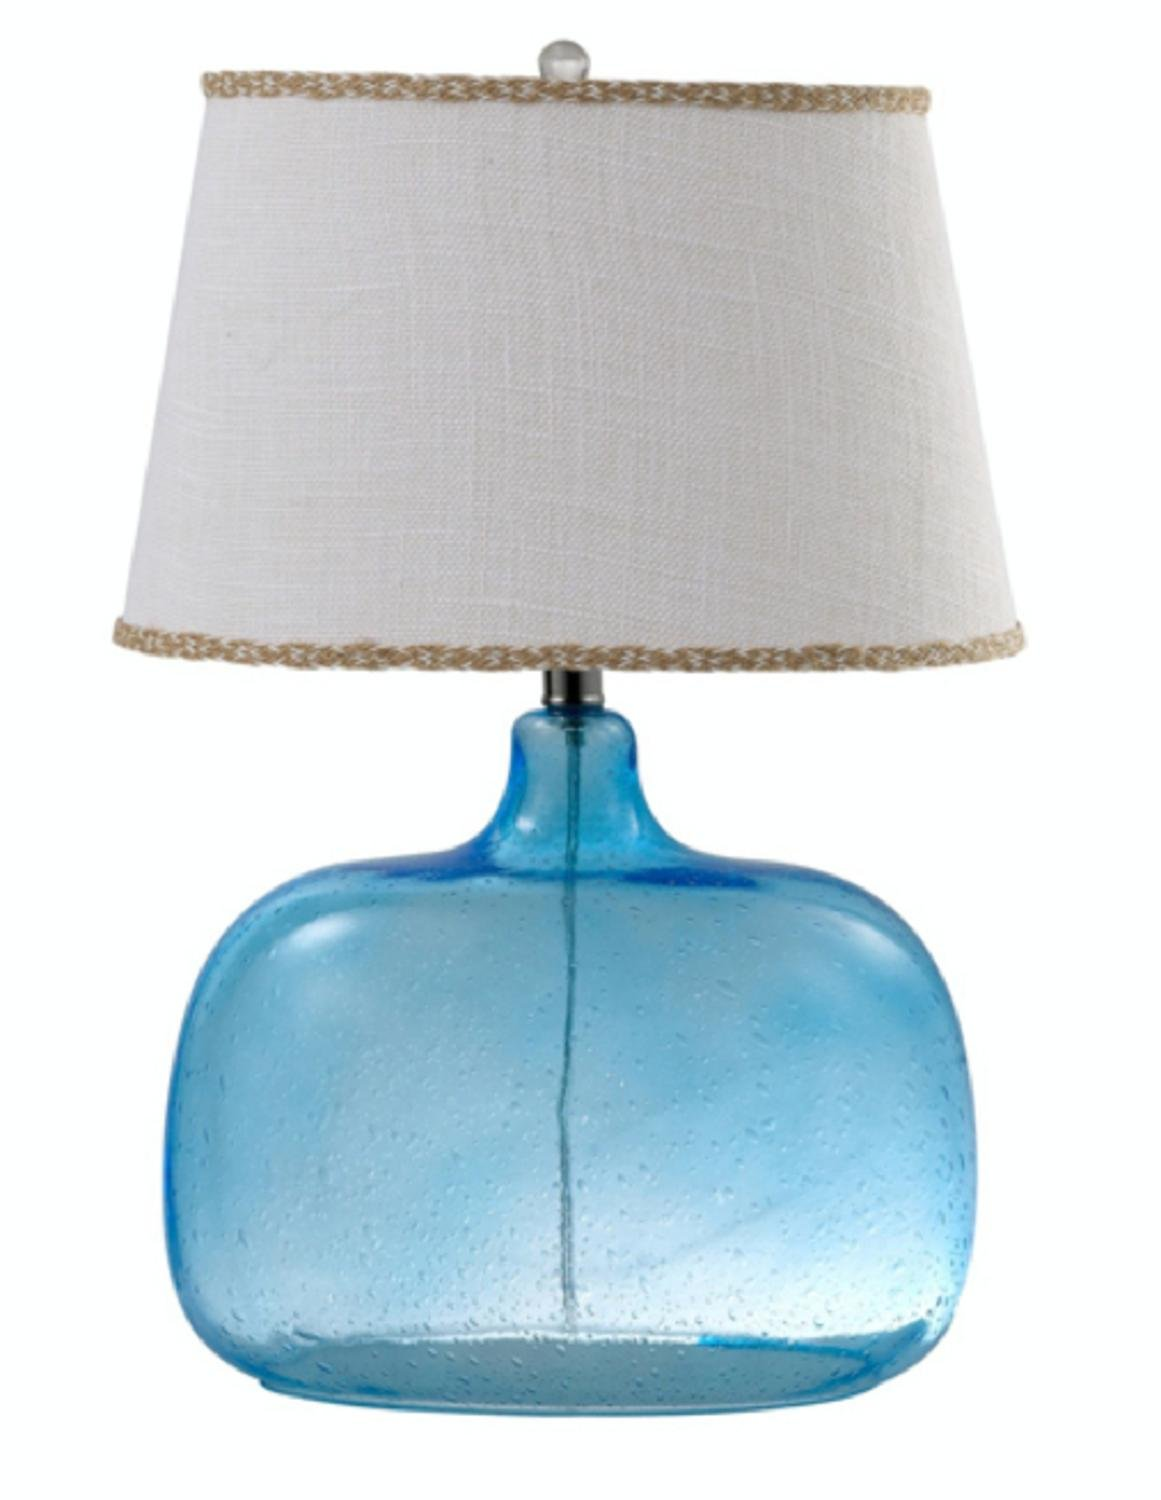 24'' Blue Spa Glass Table Lamp with Natural White Colored Round Burlap Shade